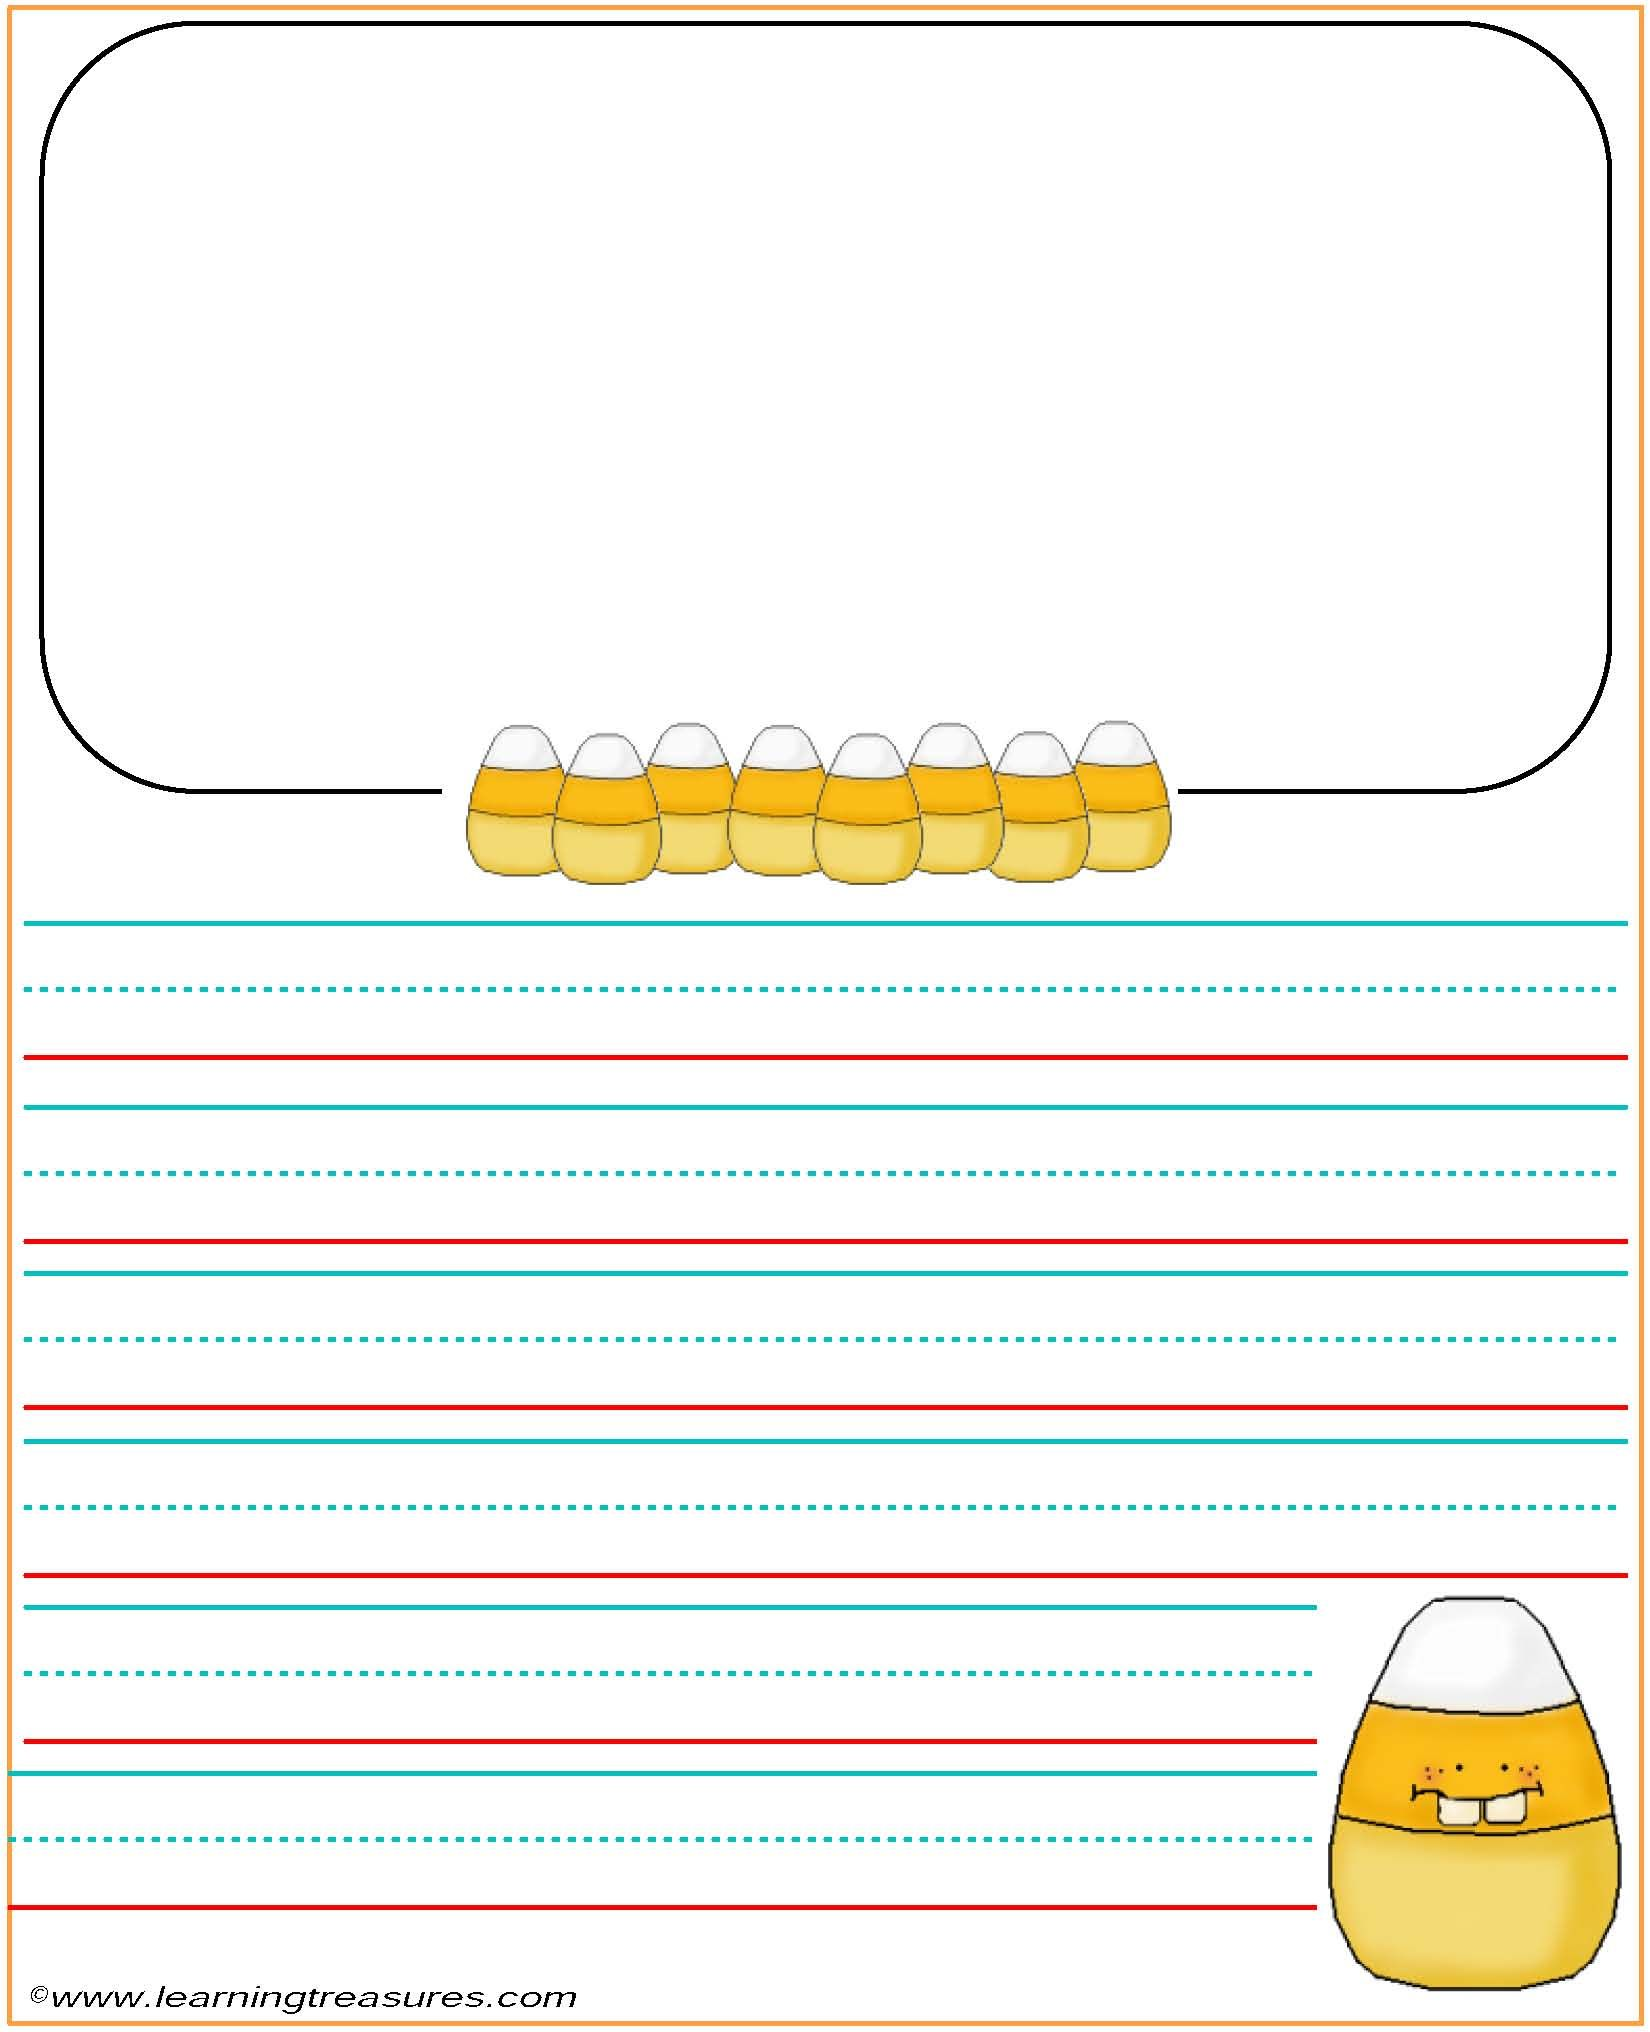 Candy Corn Story Sheet For Kids